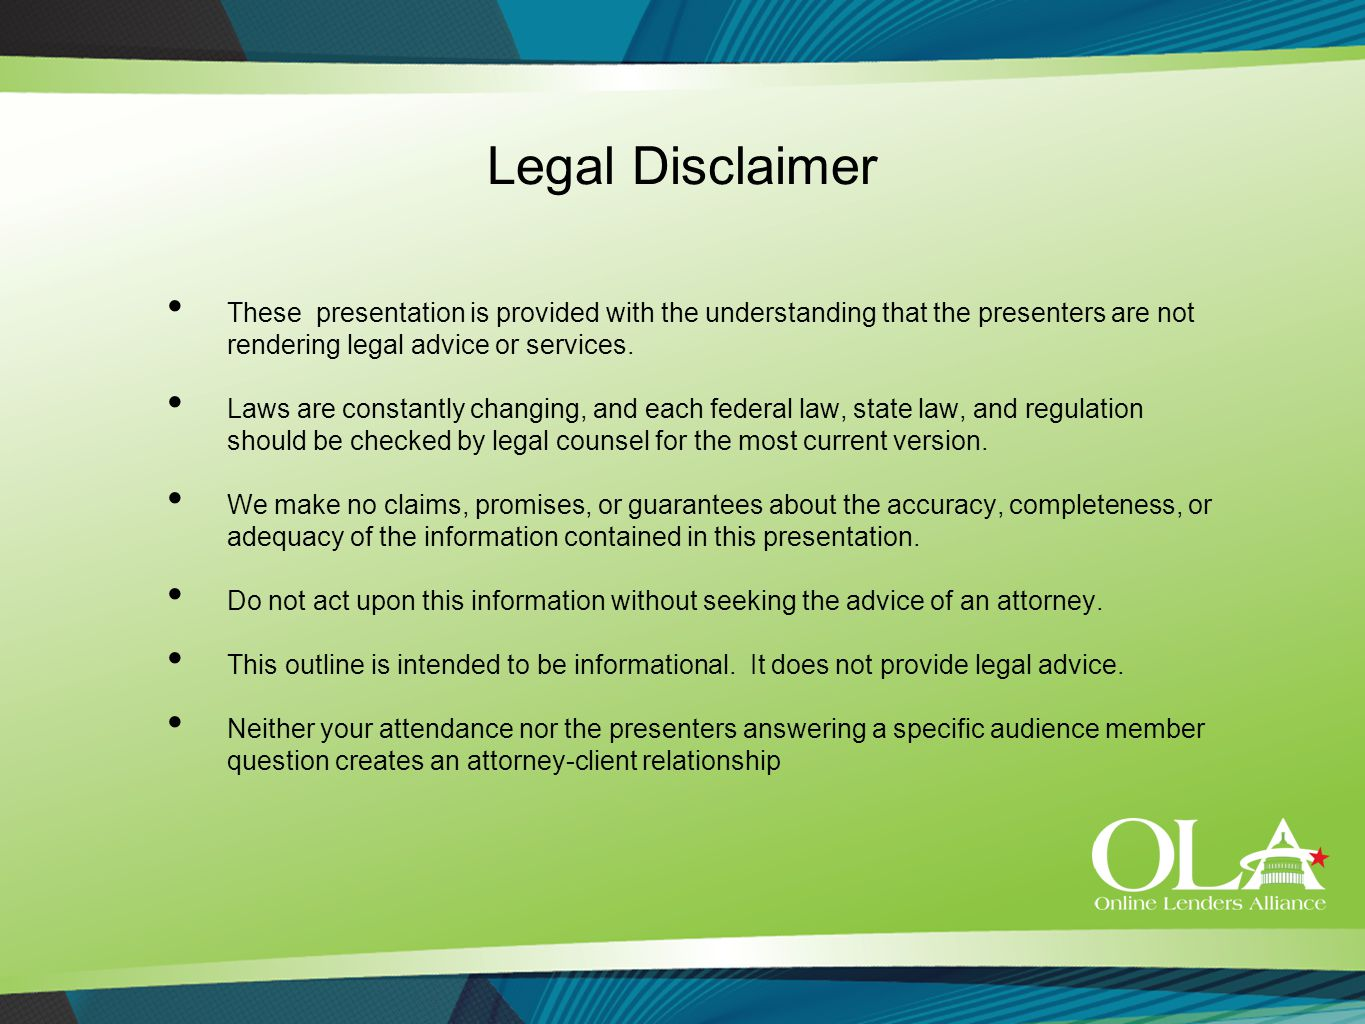 Legal Disclaimer These presentation is provided with the understanding that the presenters are not rendering legal advice or services. Laws are consta